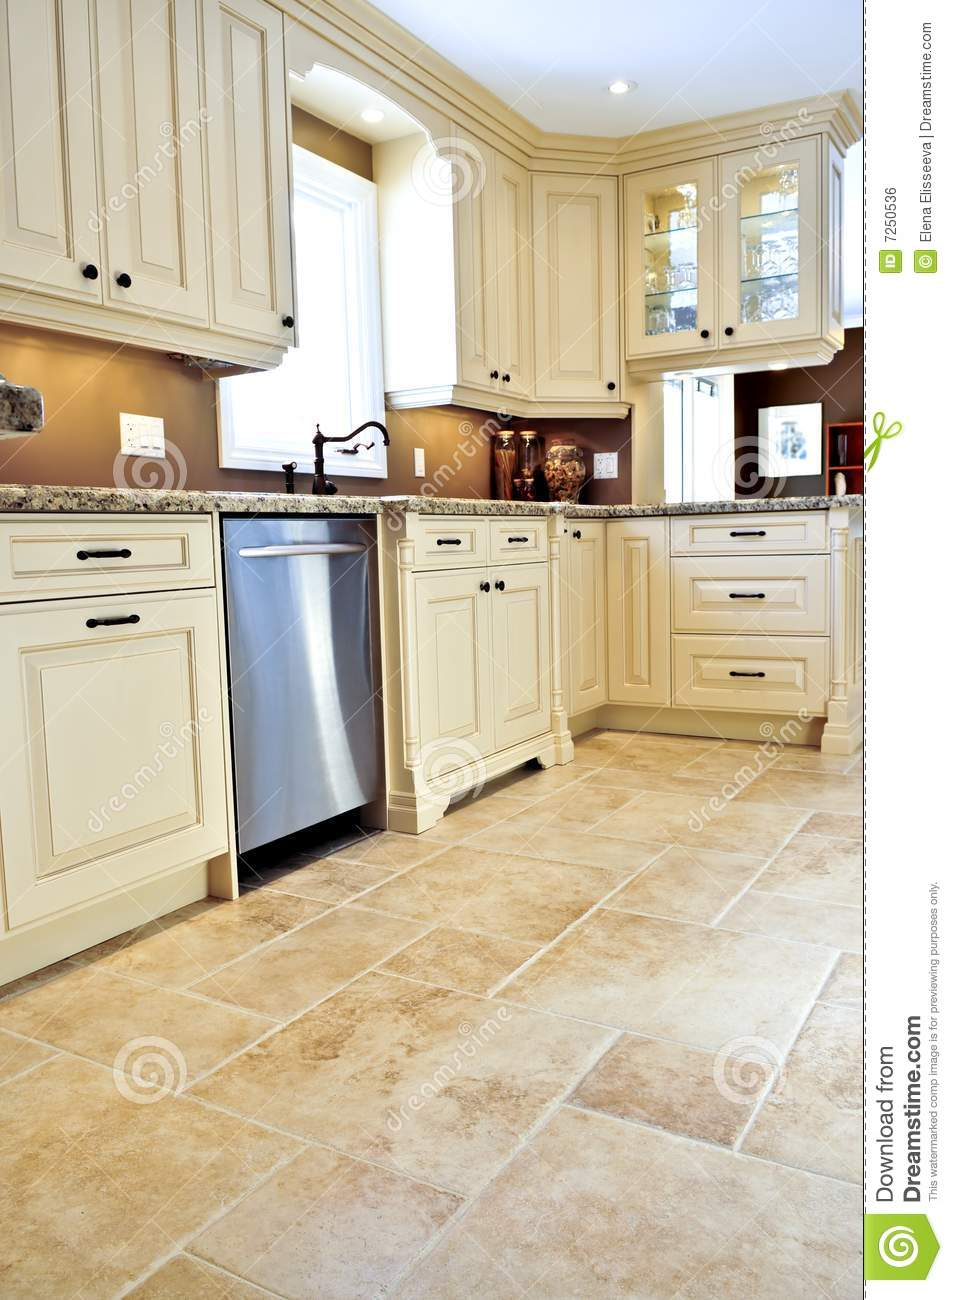 Kitchen Floor Tiling Tile Floor In Modern Kitchen Royalty Free Stock Image Image 7250536